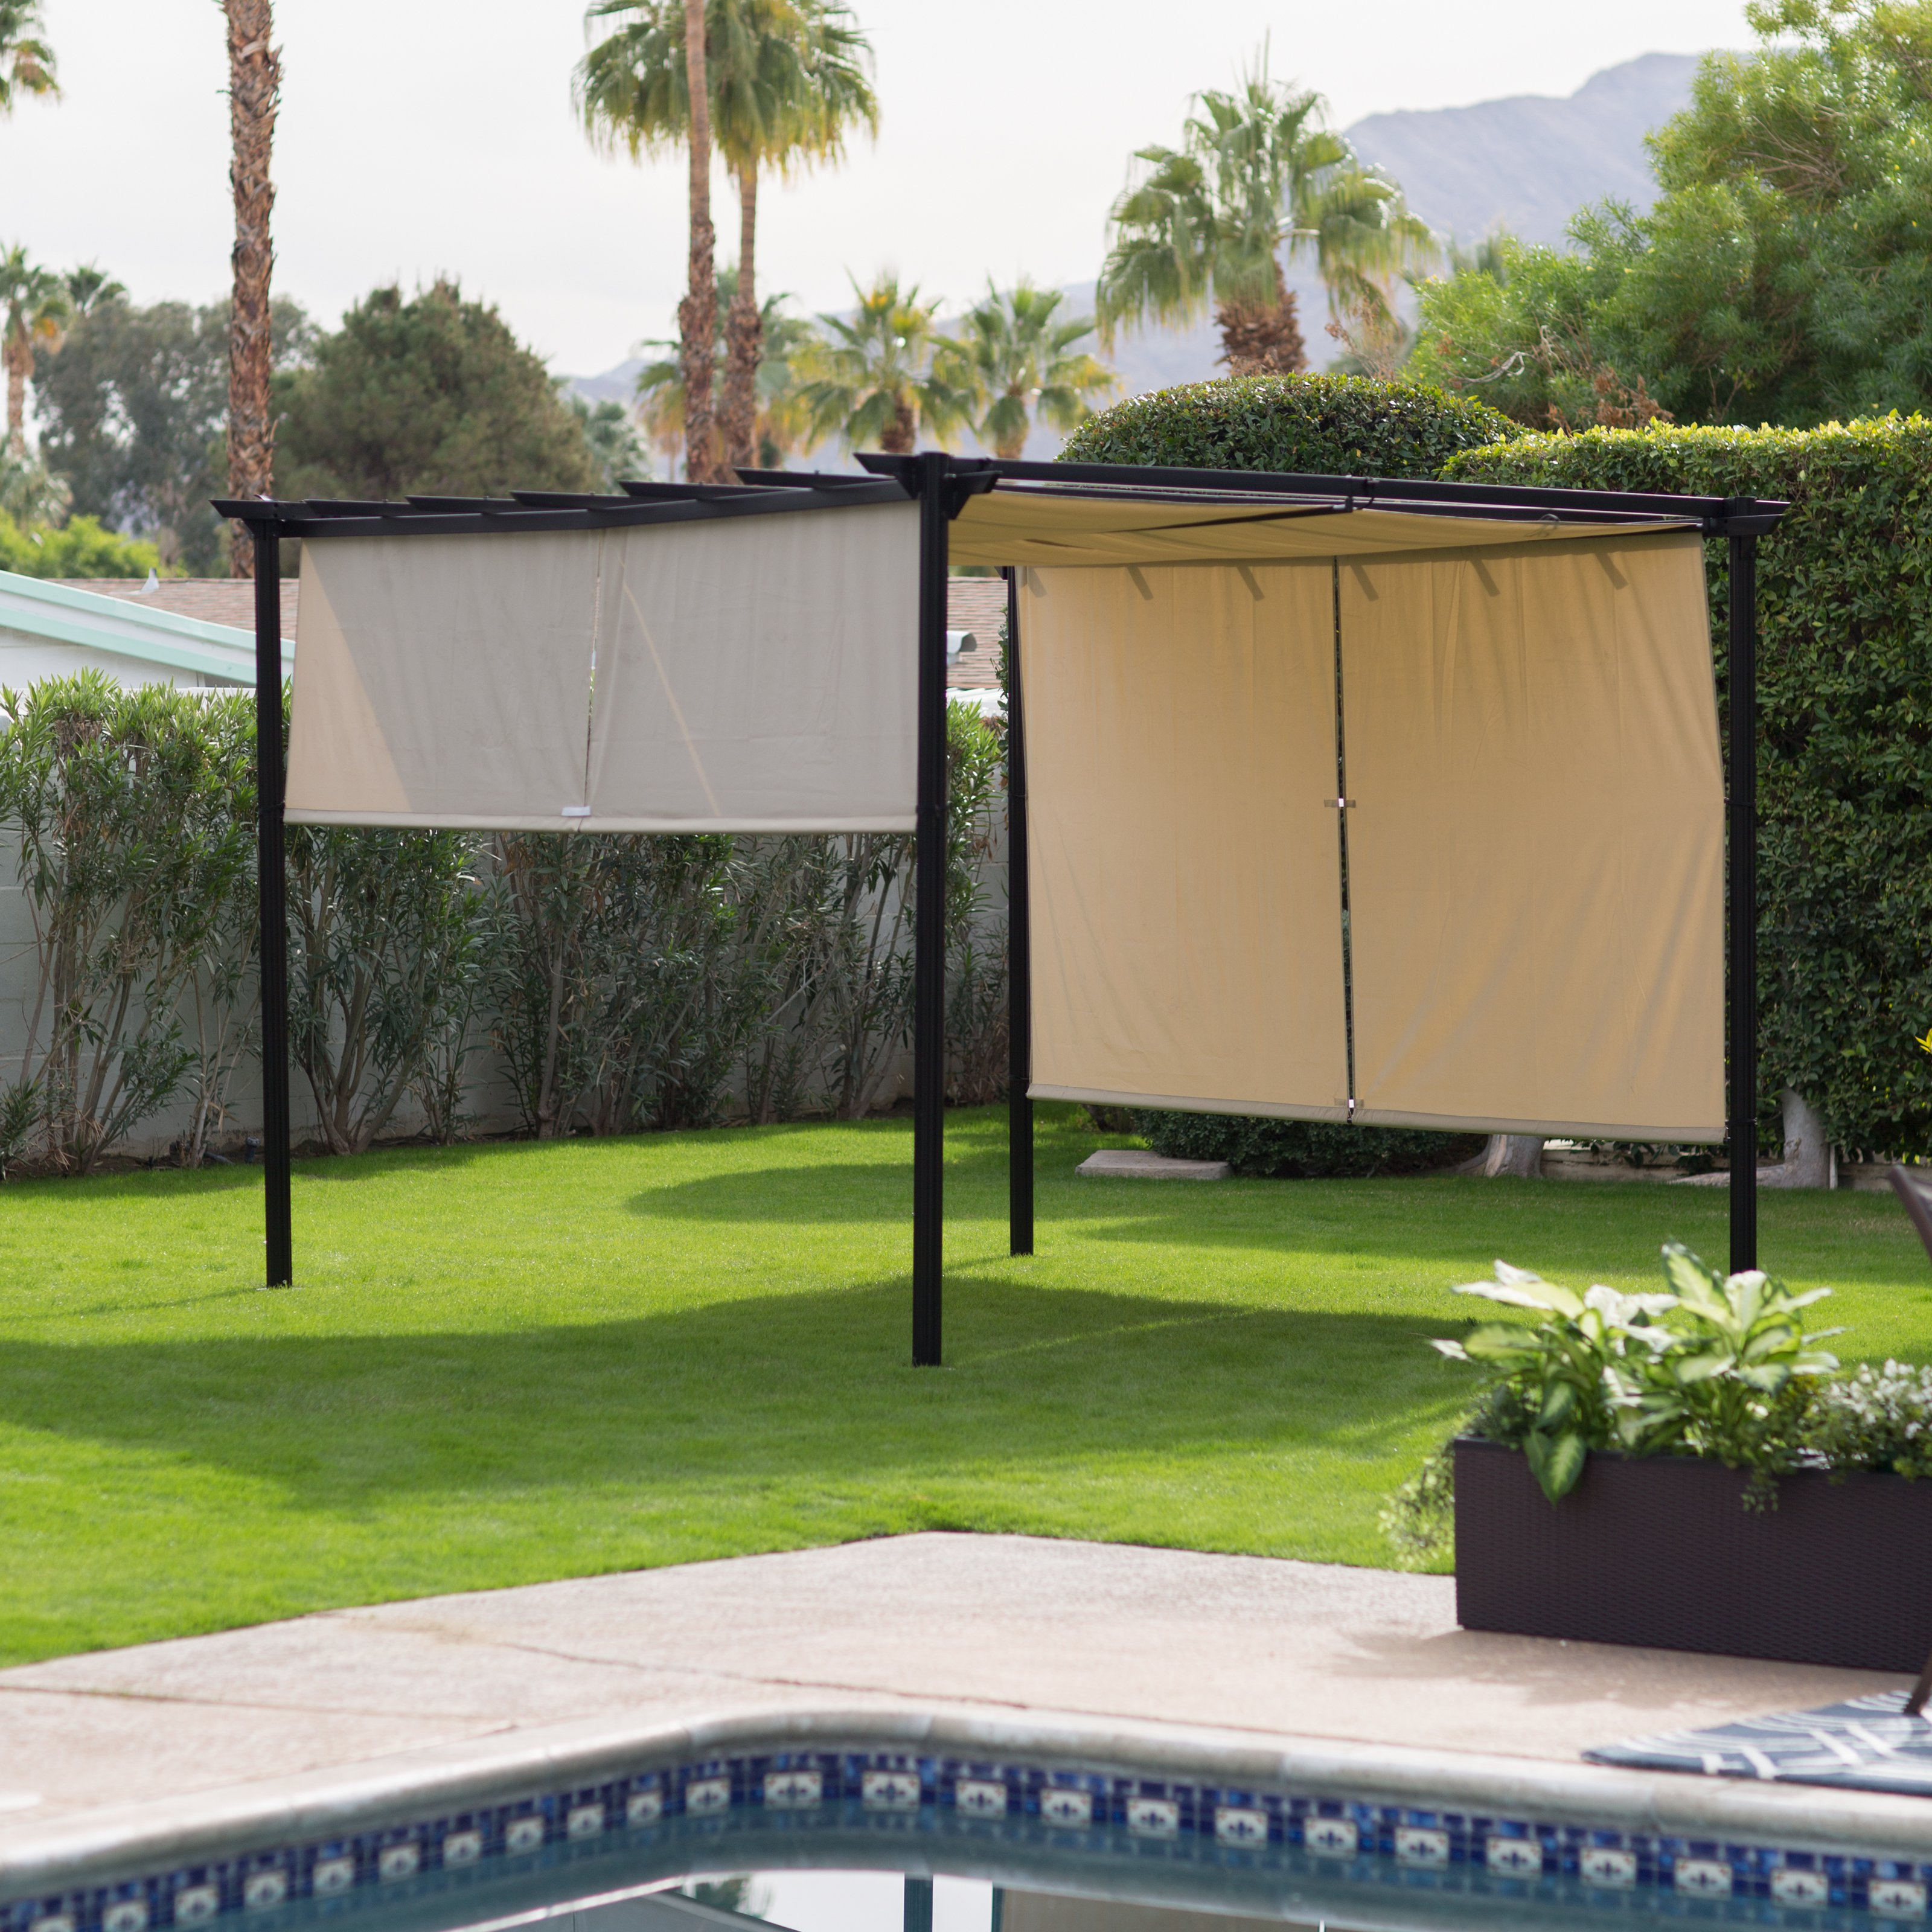 Belham Living Steel Outdoor Pergola Gazebo with Retractable Canopy Shades by